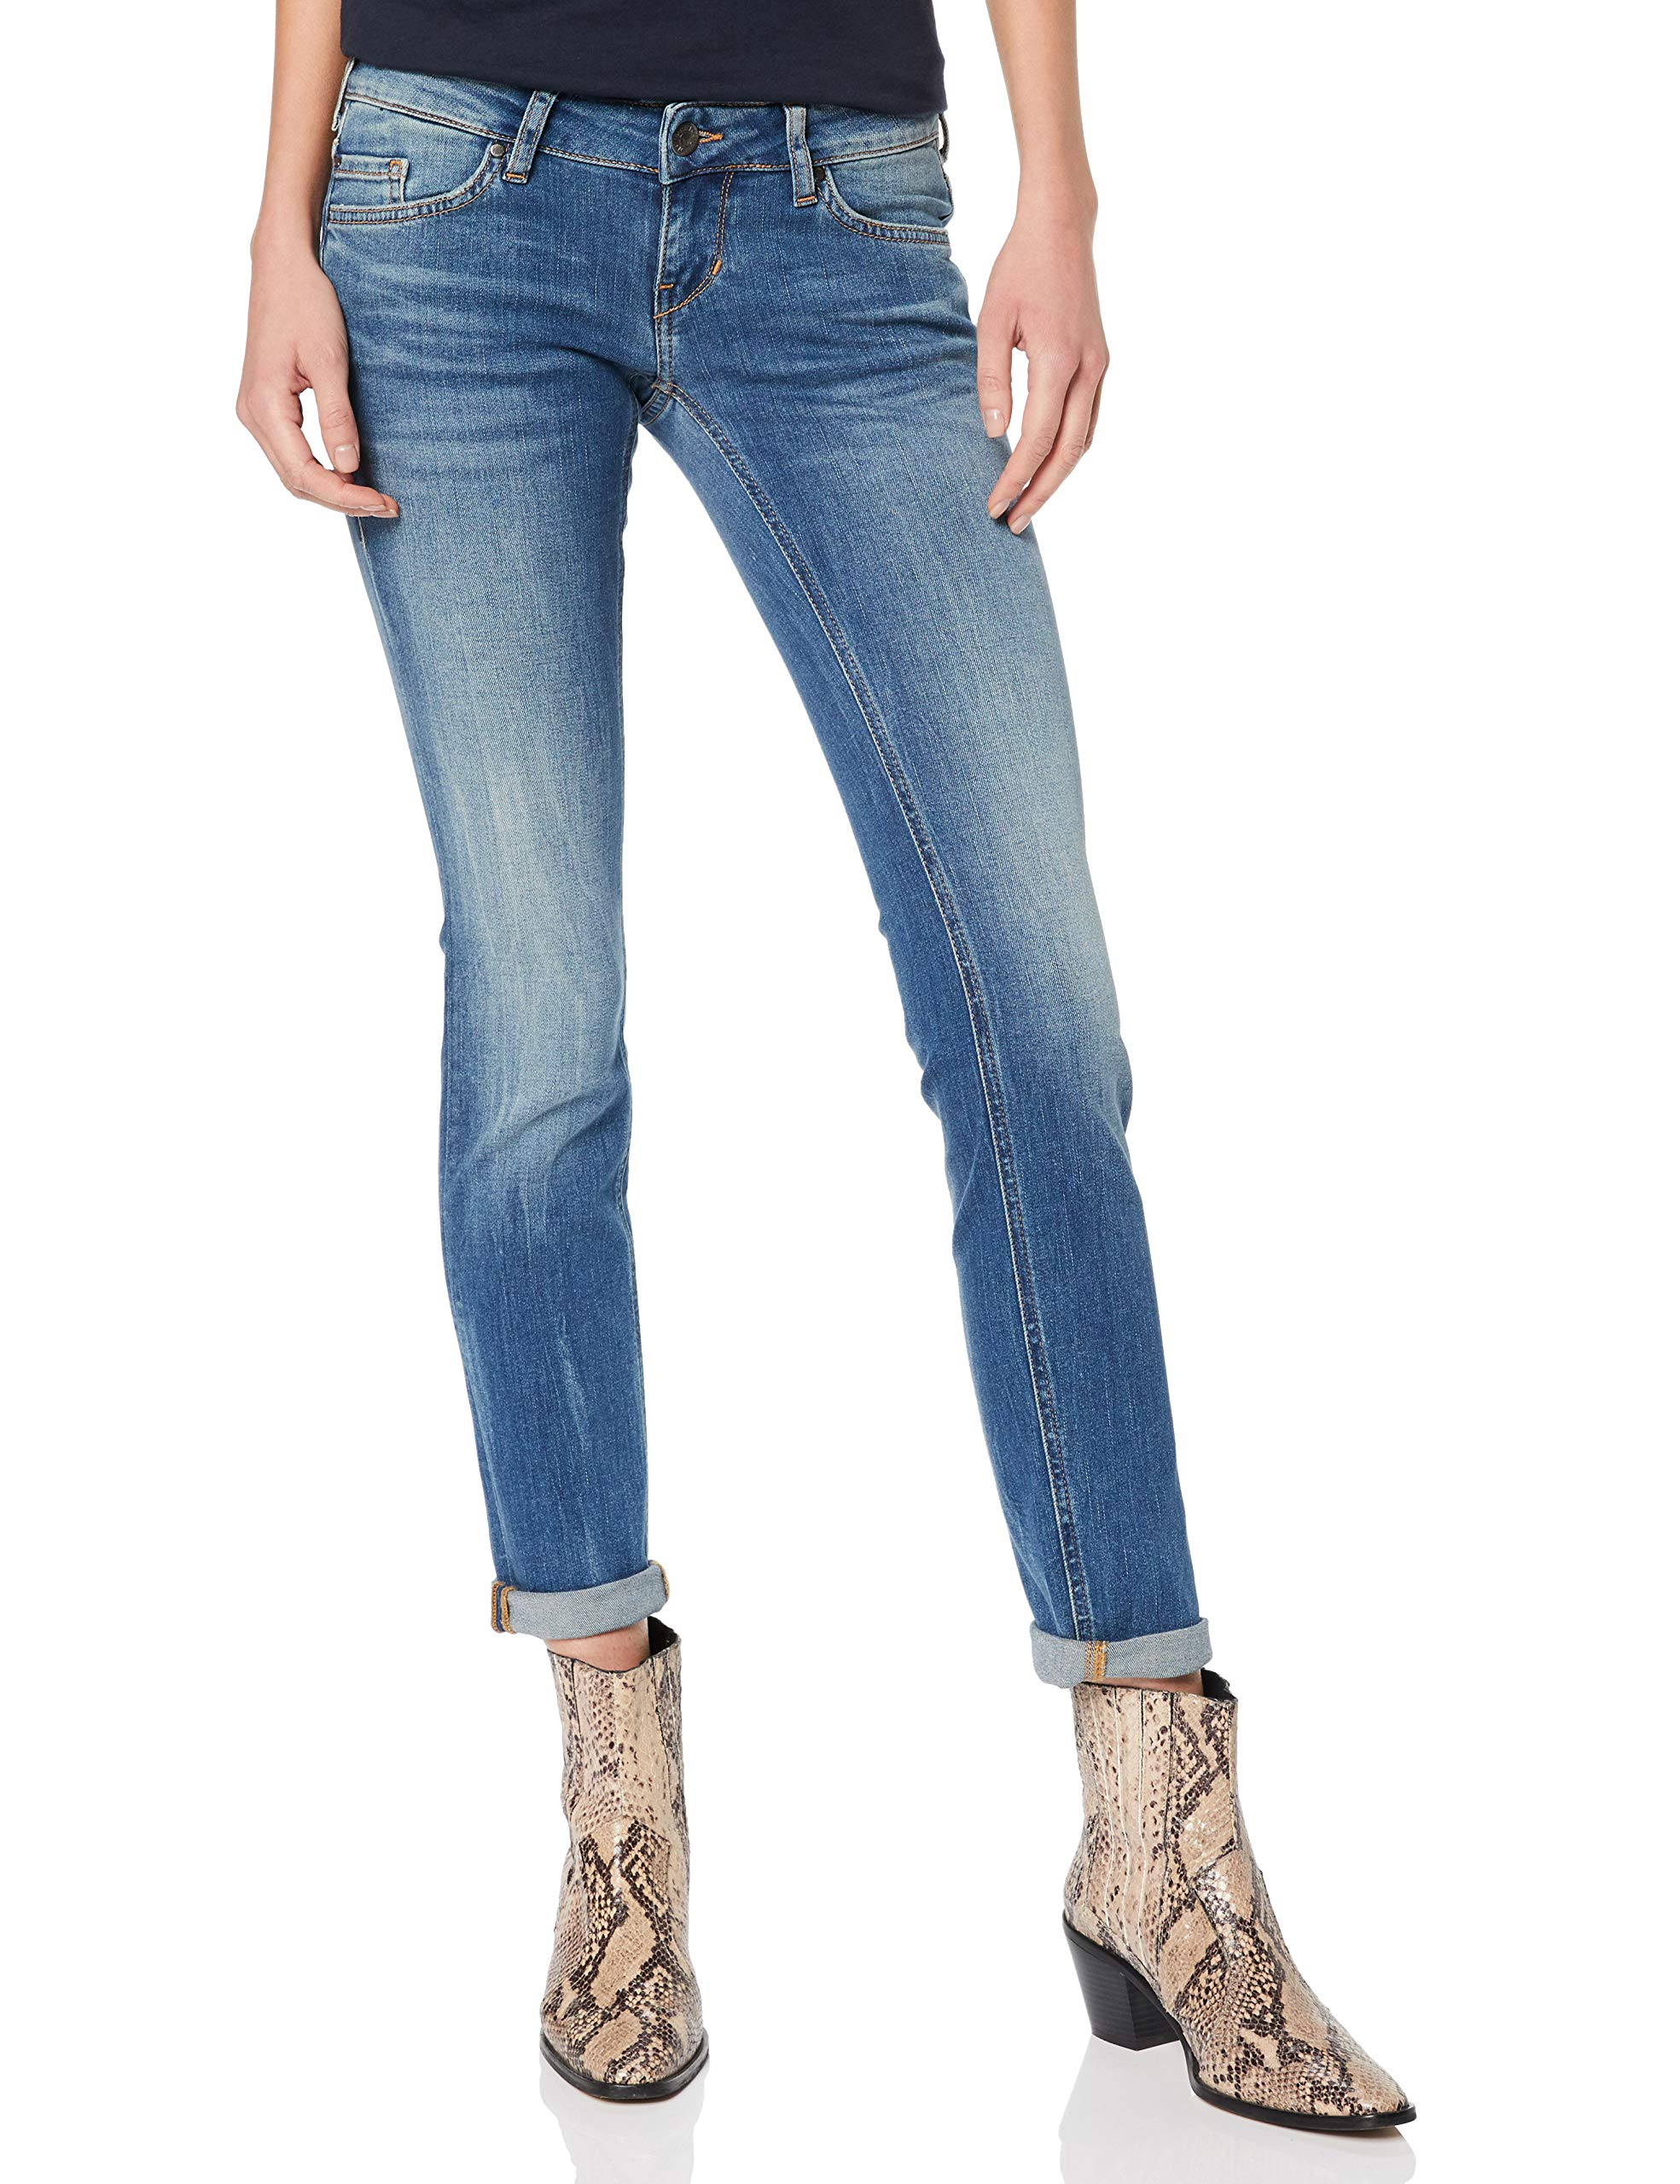 Mustang Gina l32taille 32Femme SkinnyBleumediumW25 Fabricant25 Jean xoWBQCerd